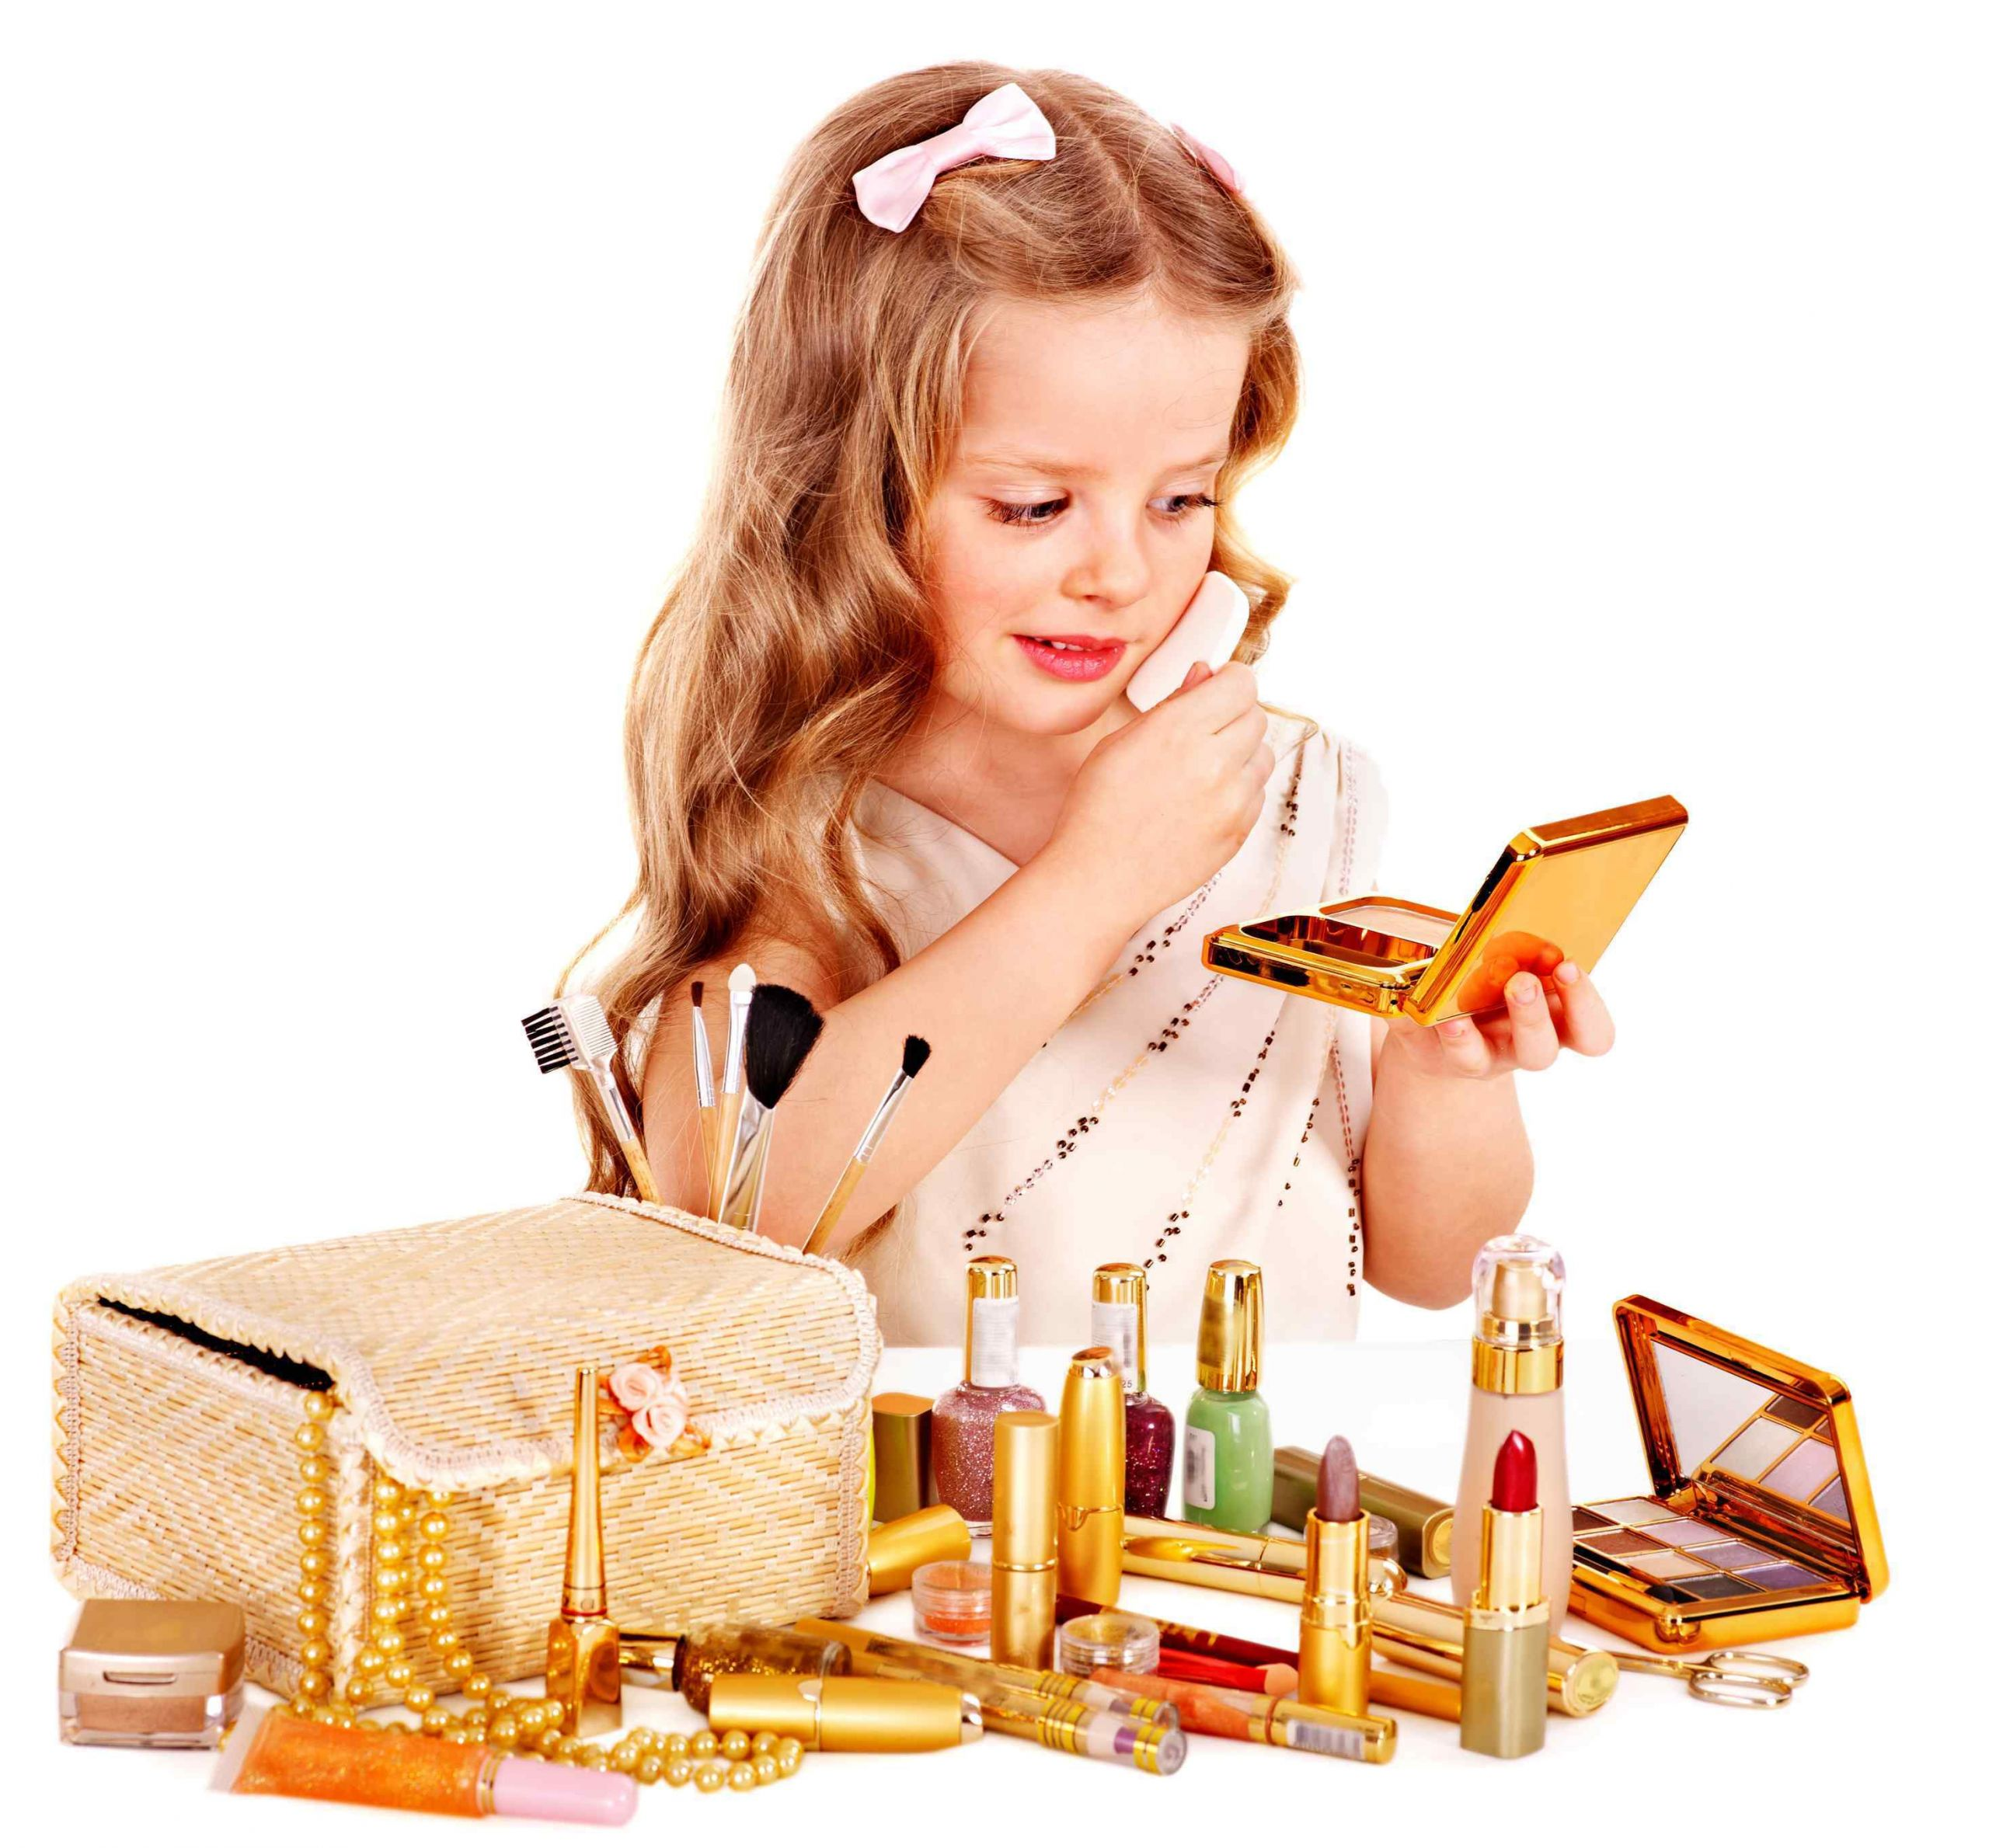 Hair Care For Kids  Kids Hair Care Products Just 4 Kids Salon & Birthday